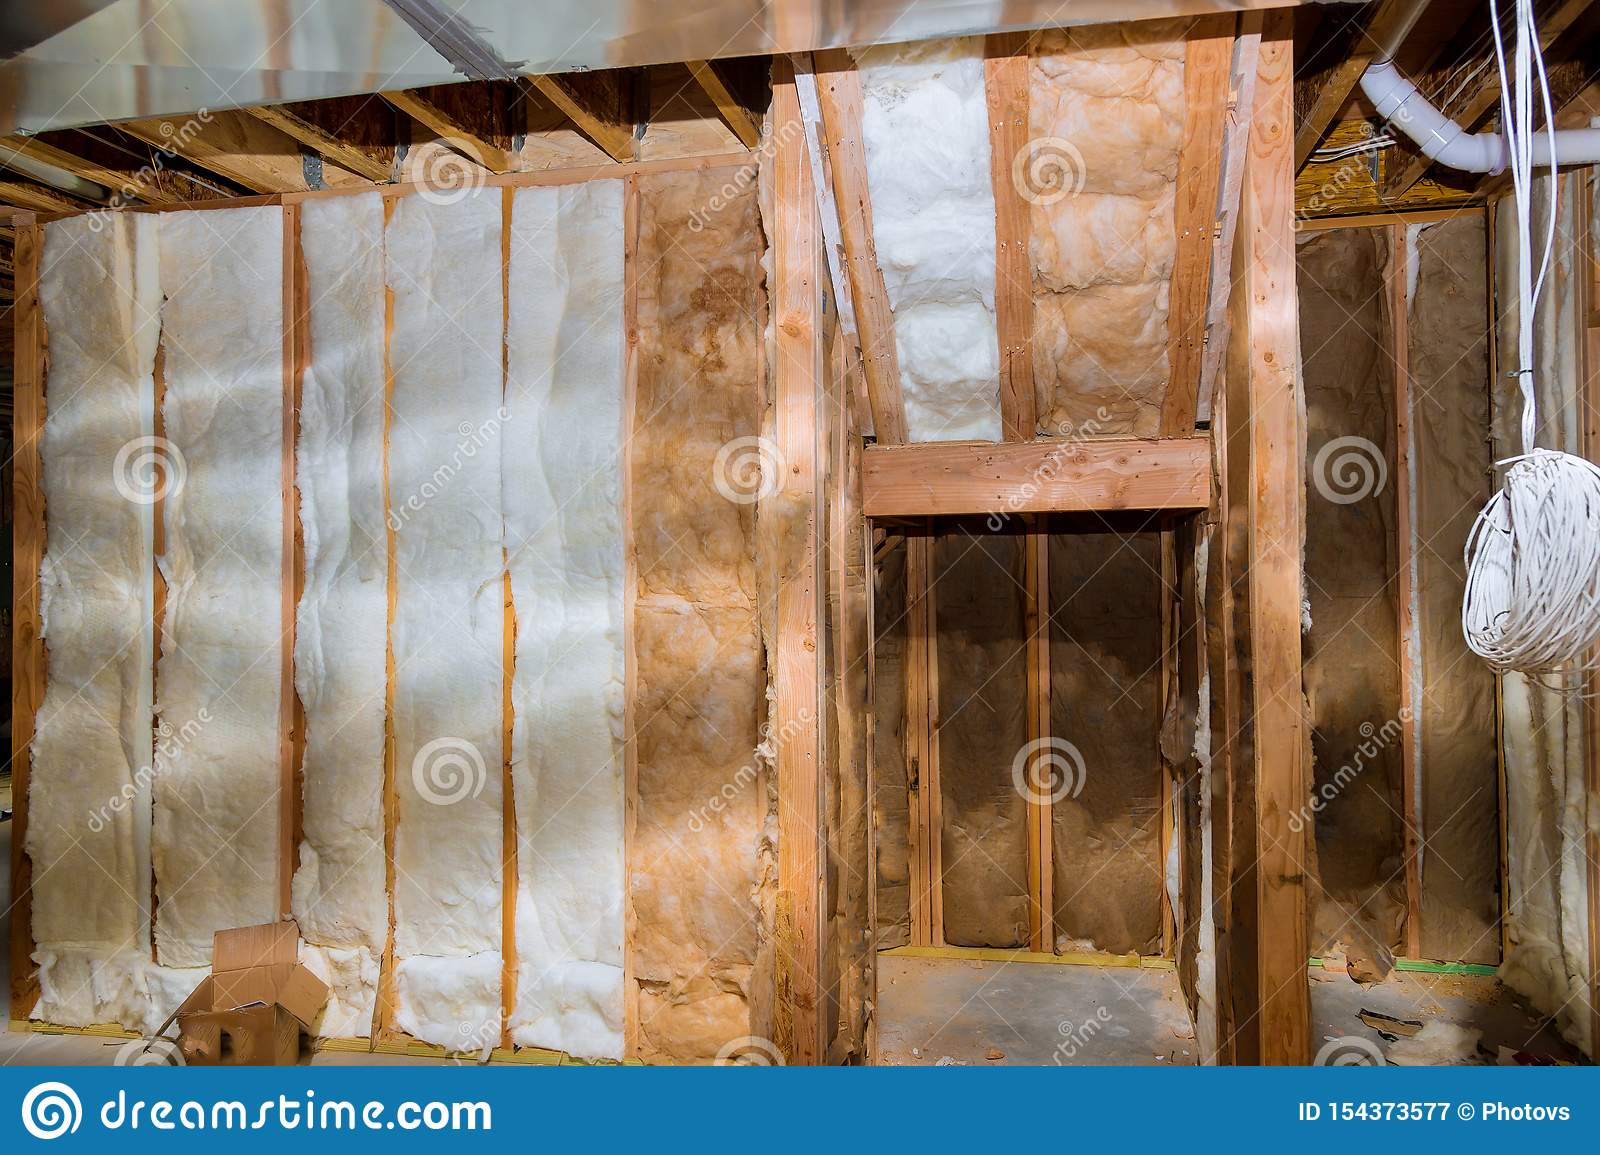 Image of: Thermal Insulation With House Construction Site Basement Walls Stock Image Image Of Heat Concrete 154373577